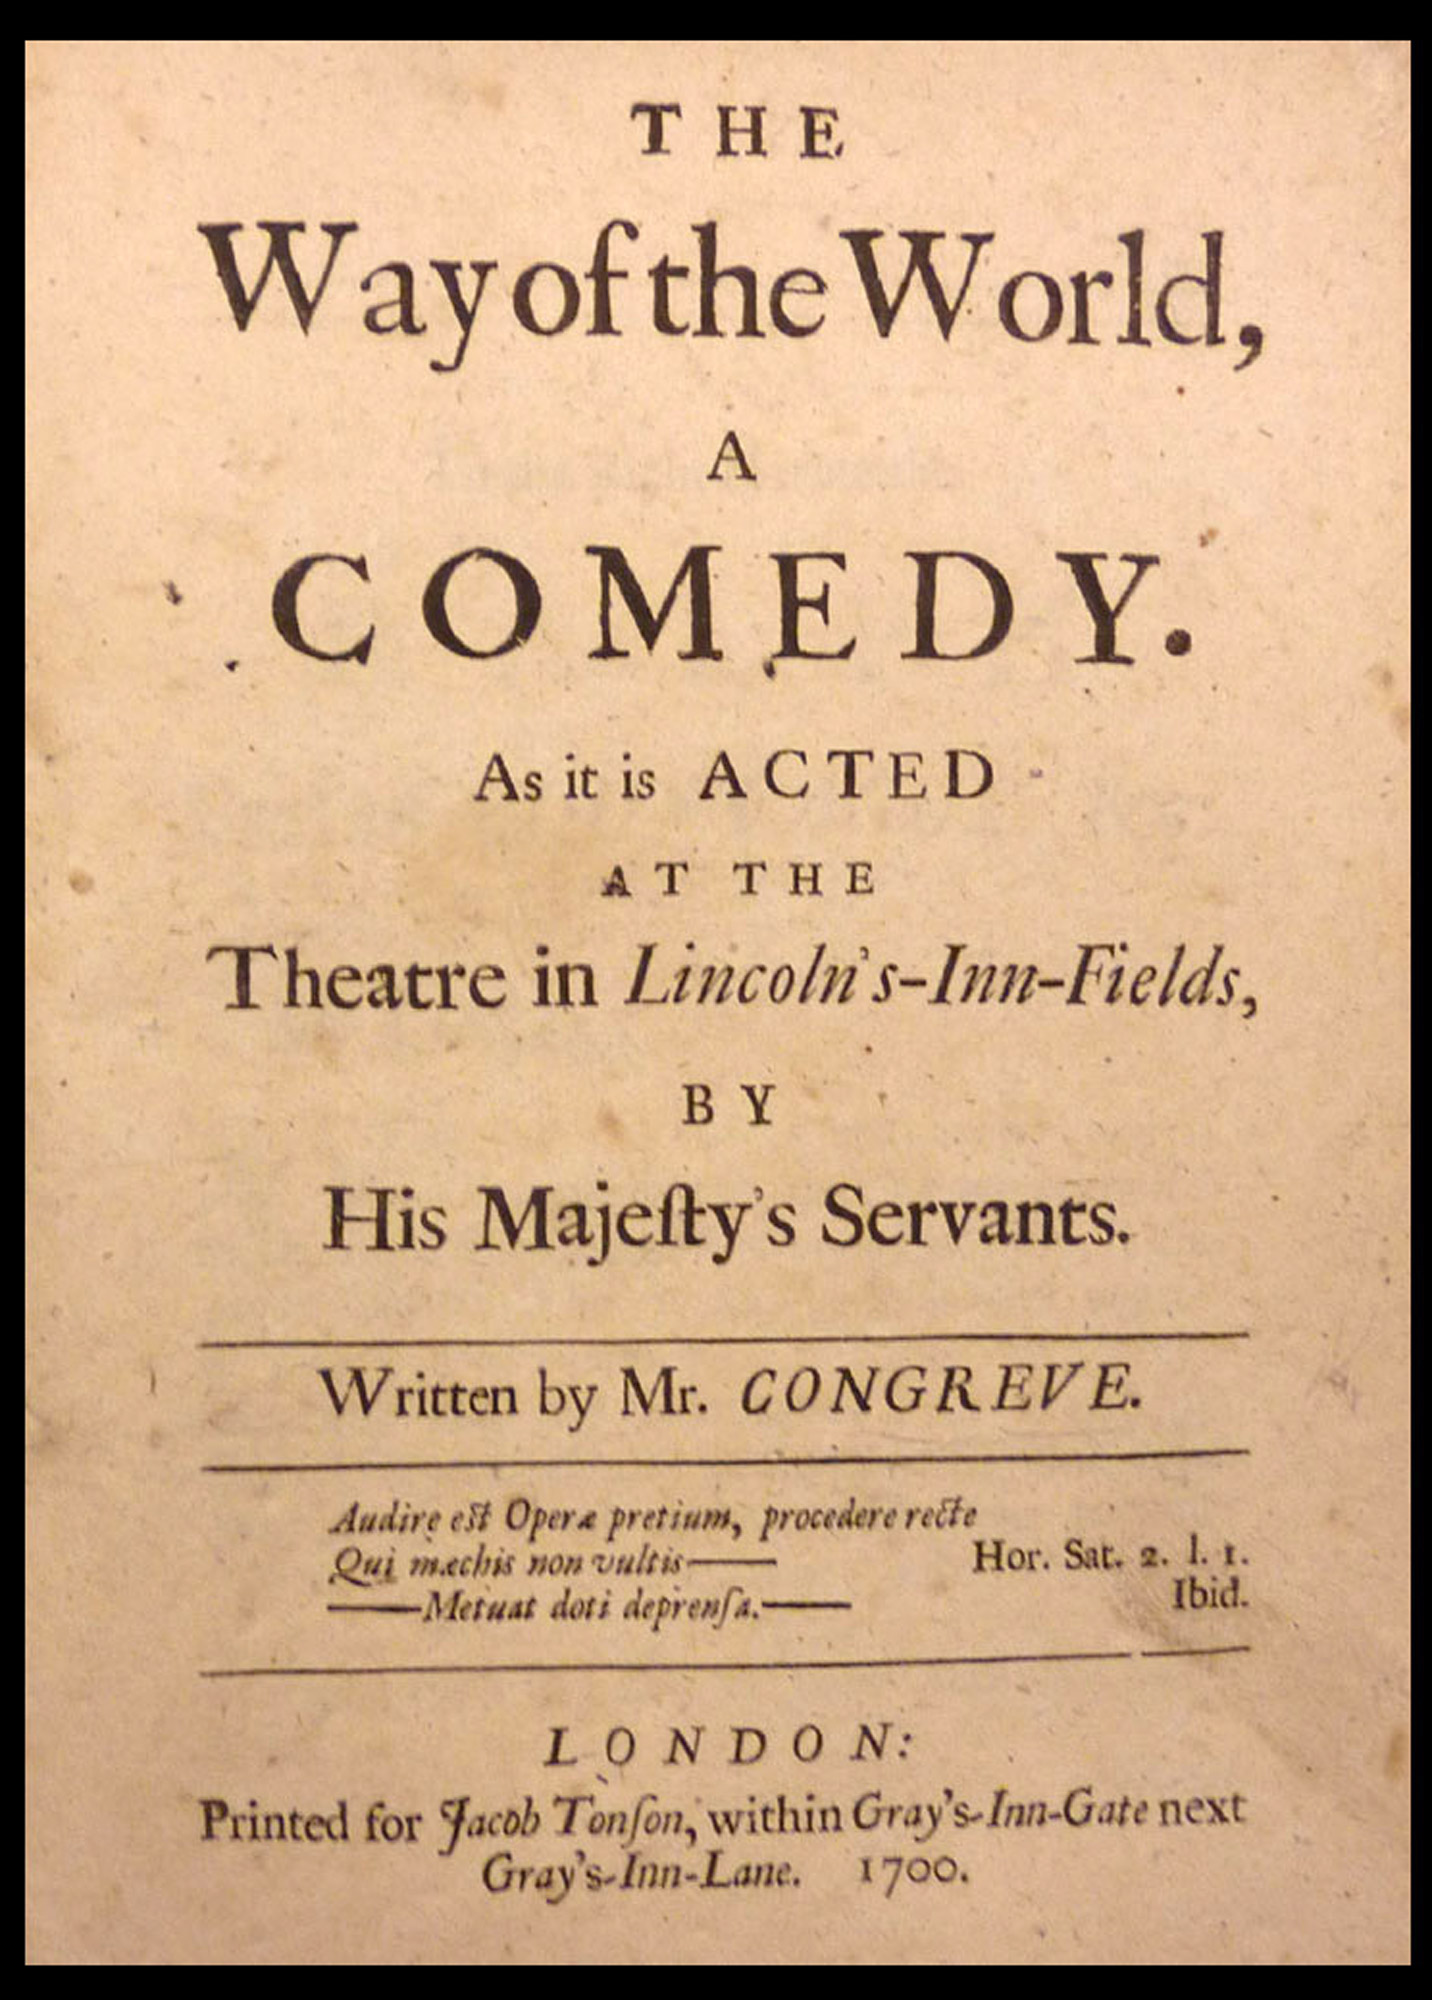 Congreve's The Way of the World